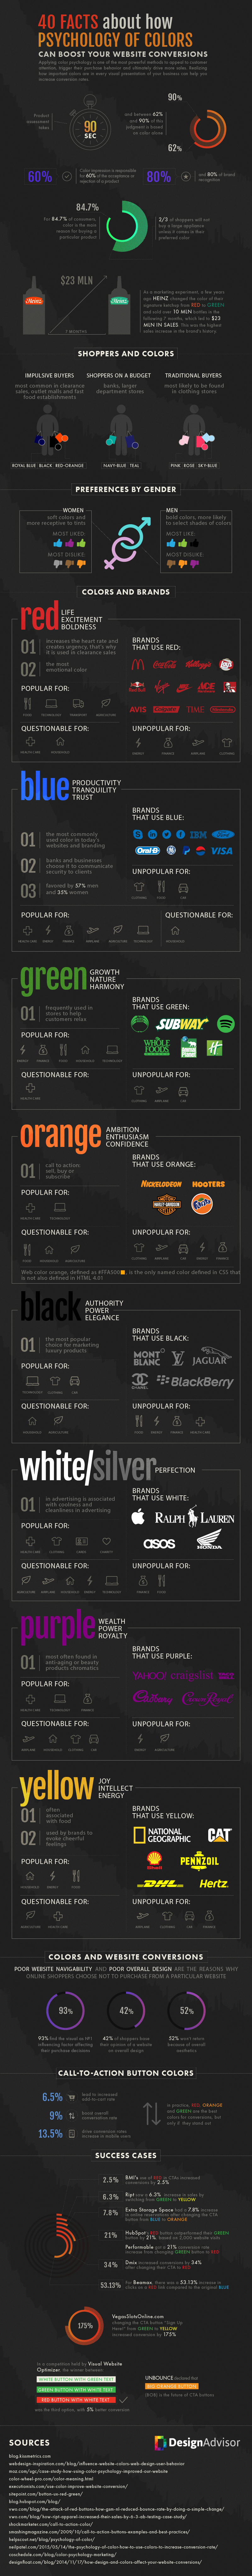 psychology-of-colors